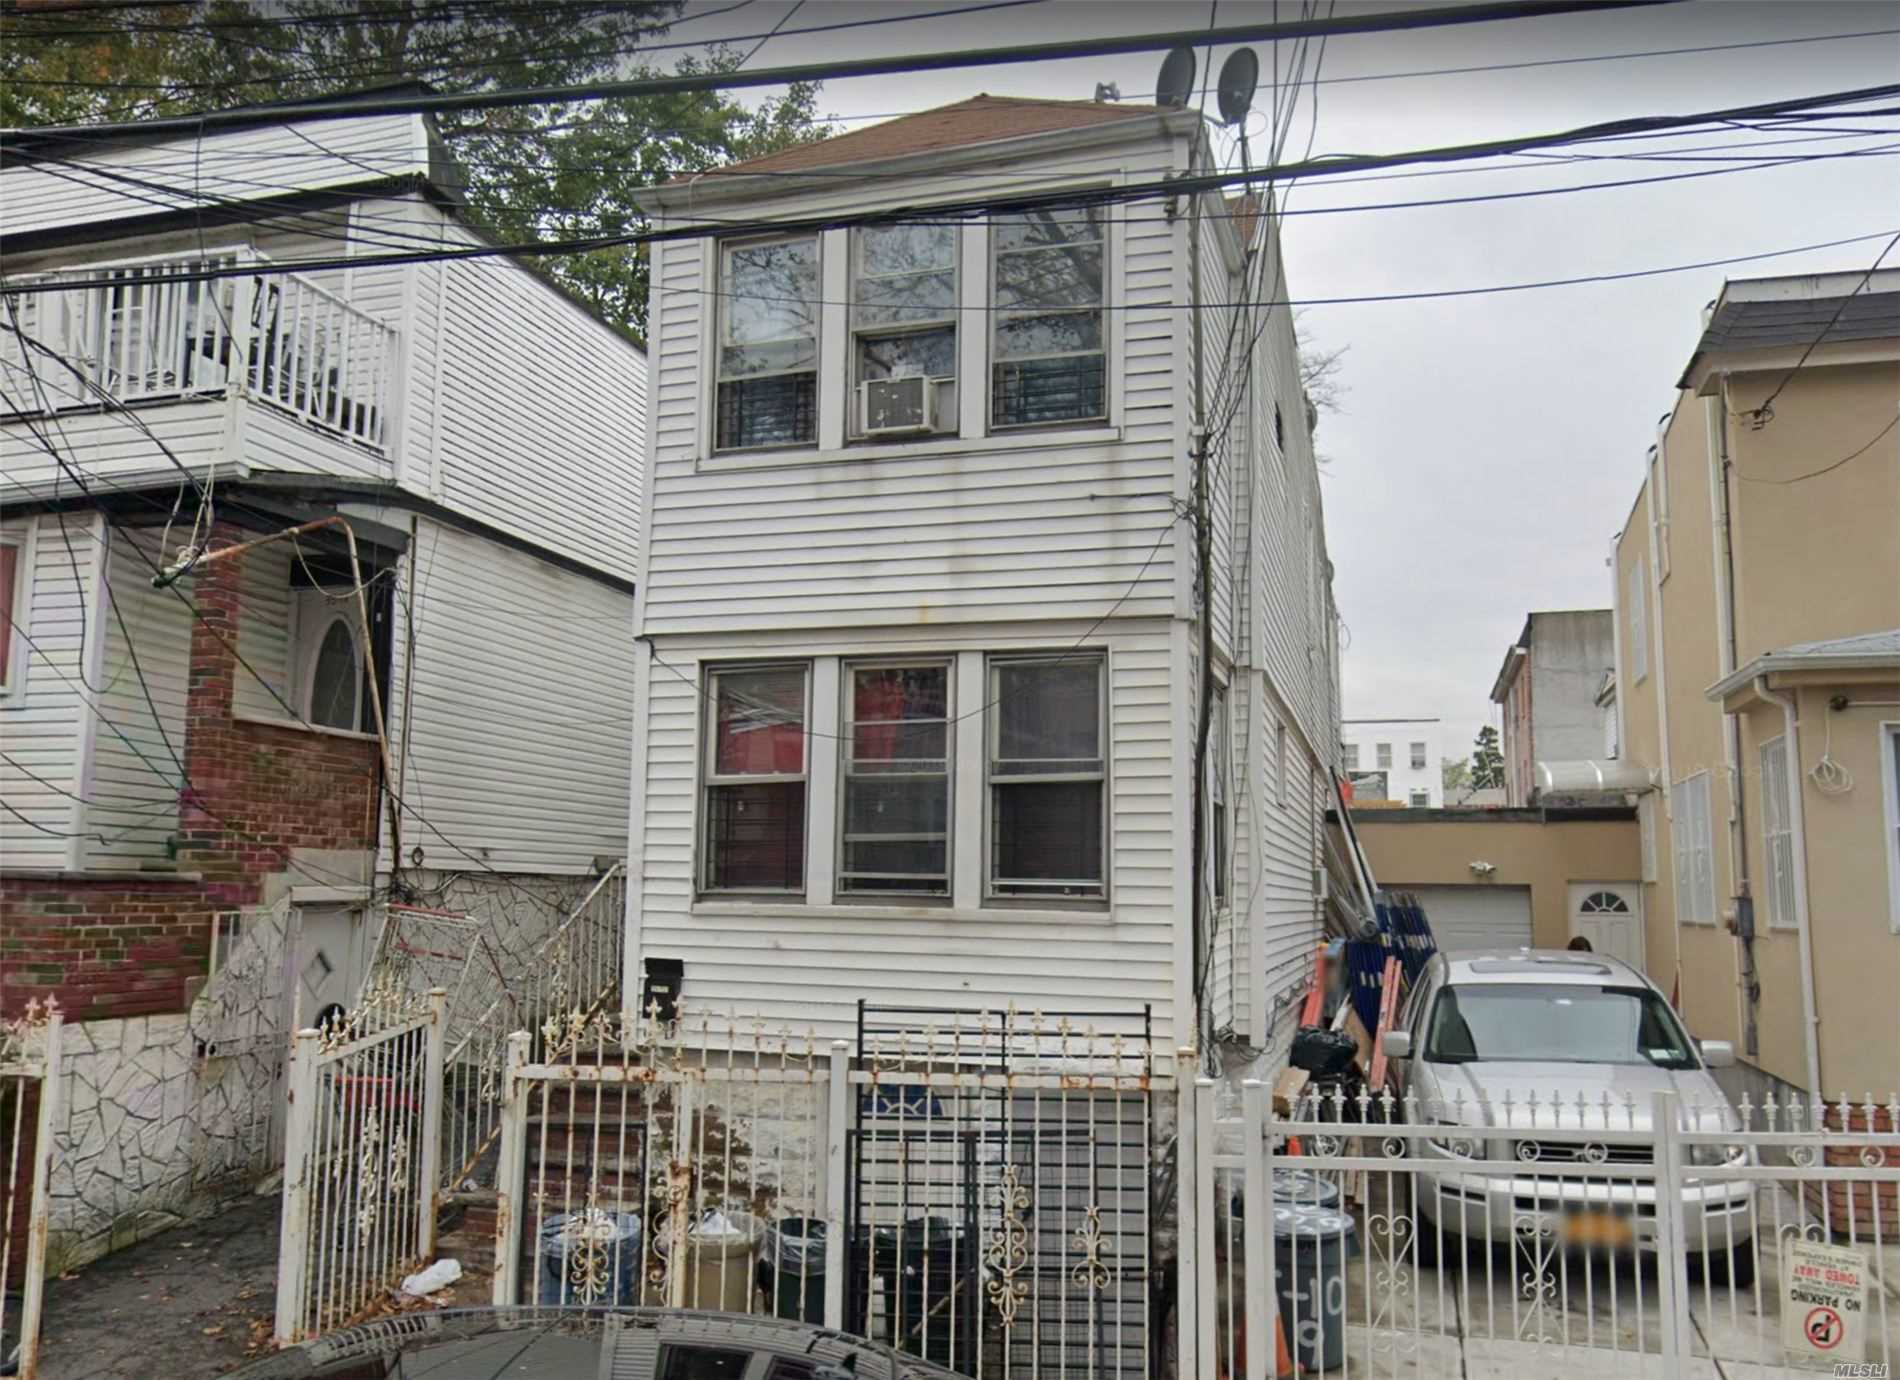 Property for sale at 35-12 109th Street, Flushing NY 11368, Flushing,  New York 11368